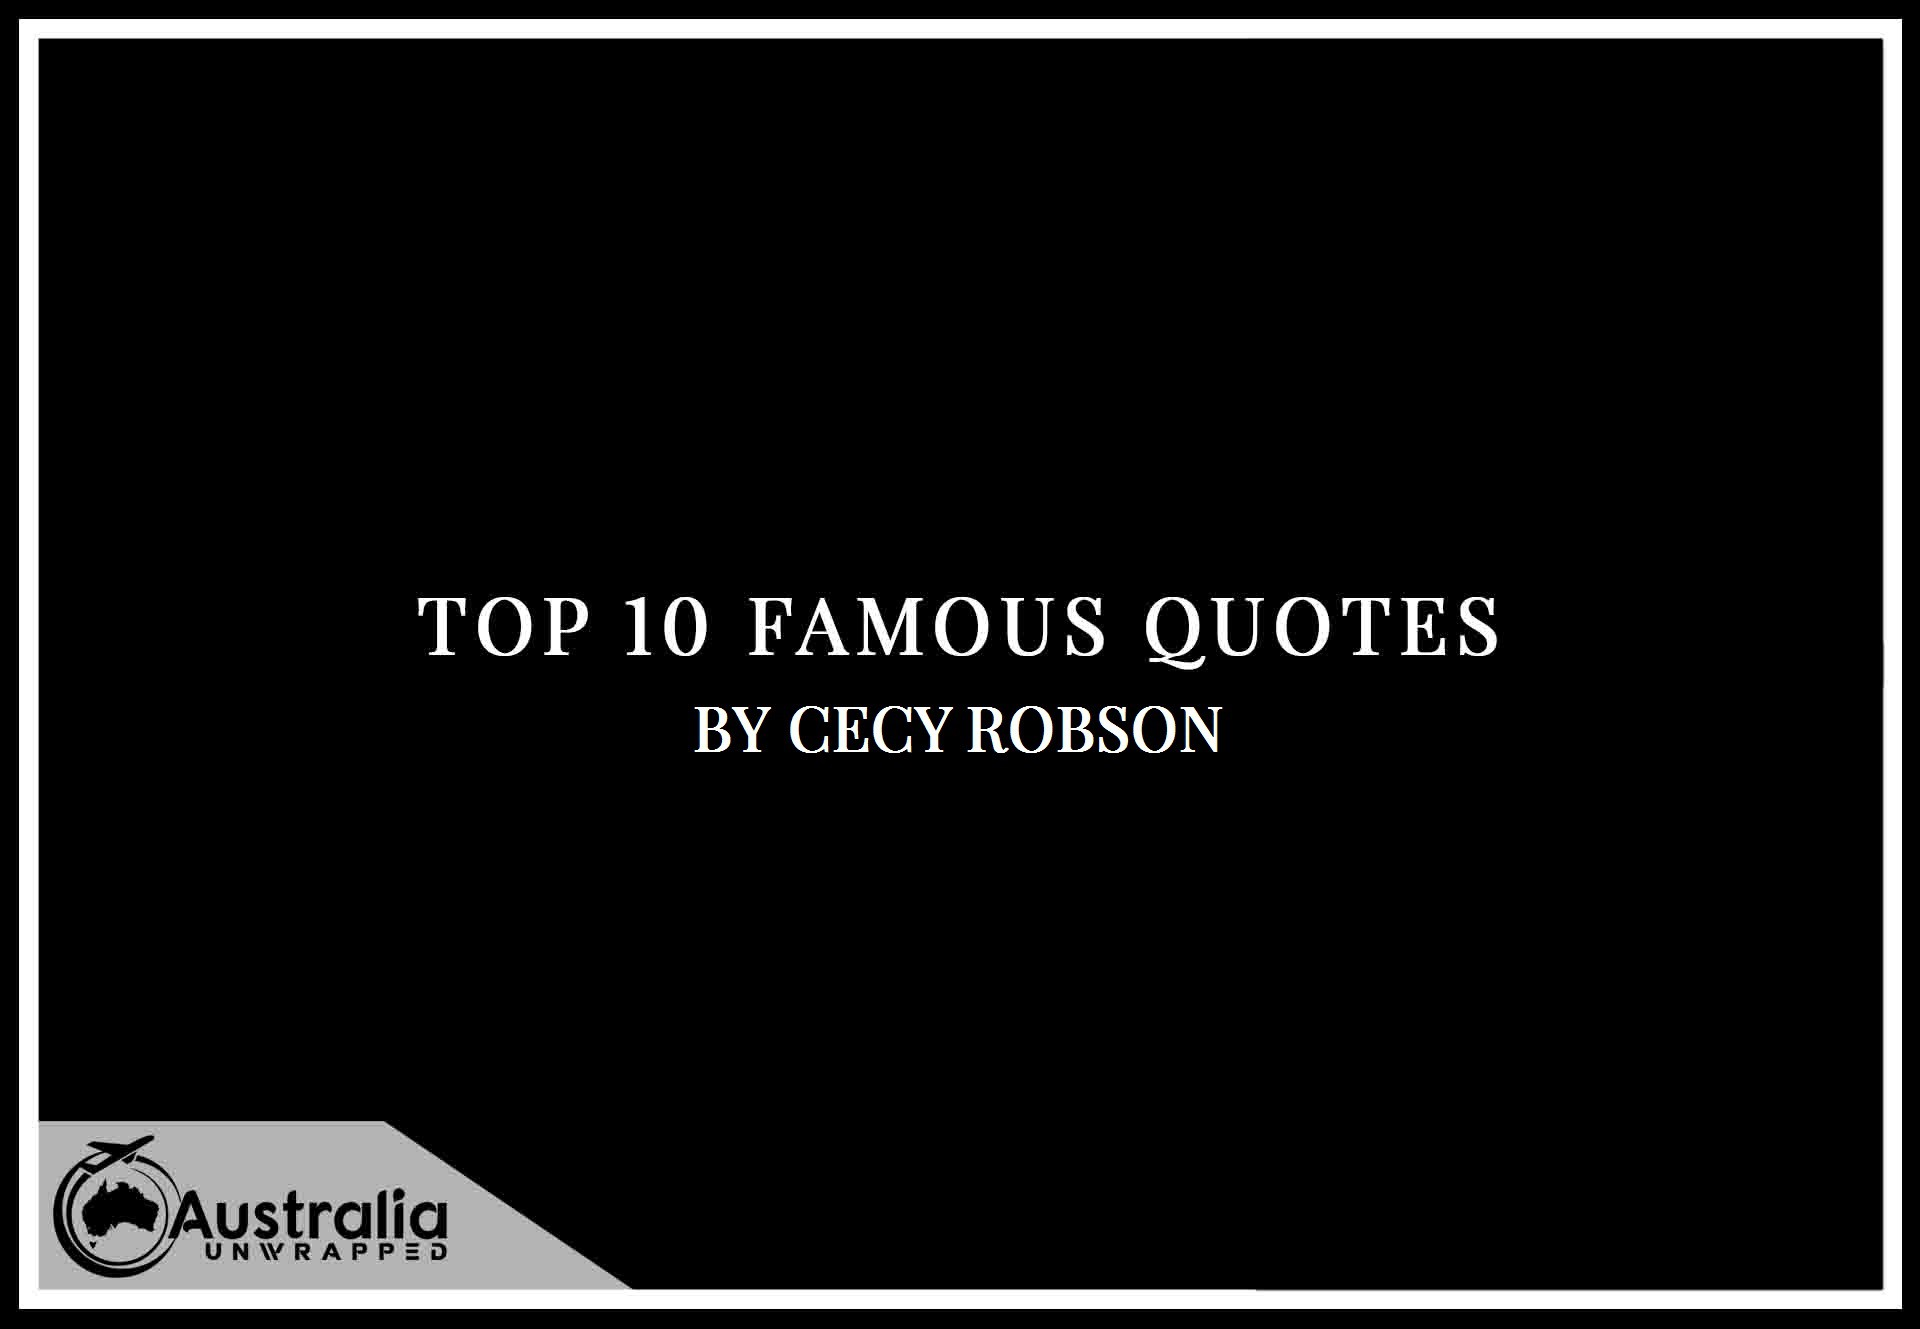 Cecy Robson's Top 10 Popular and Famous Quotes